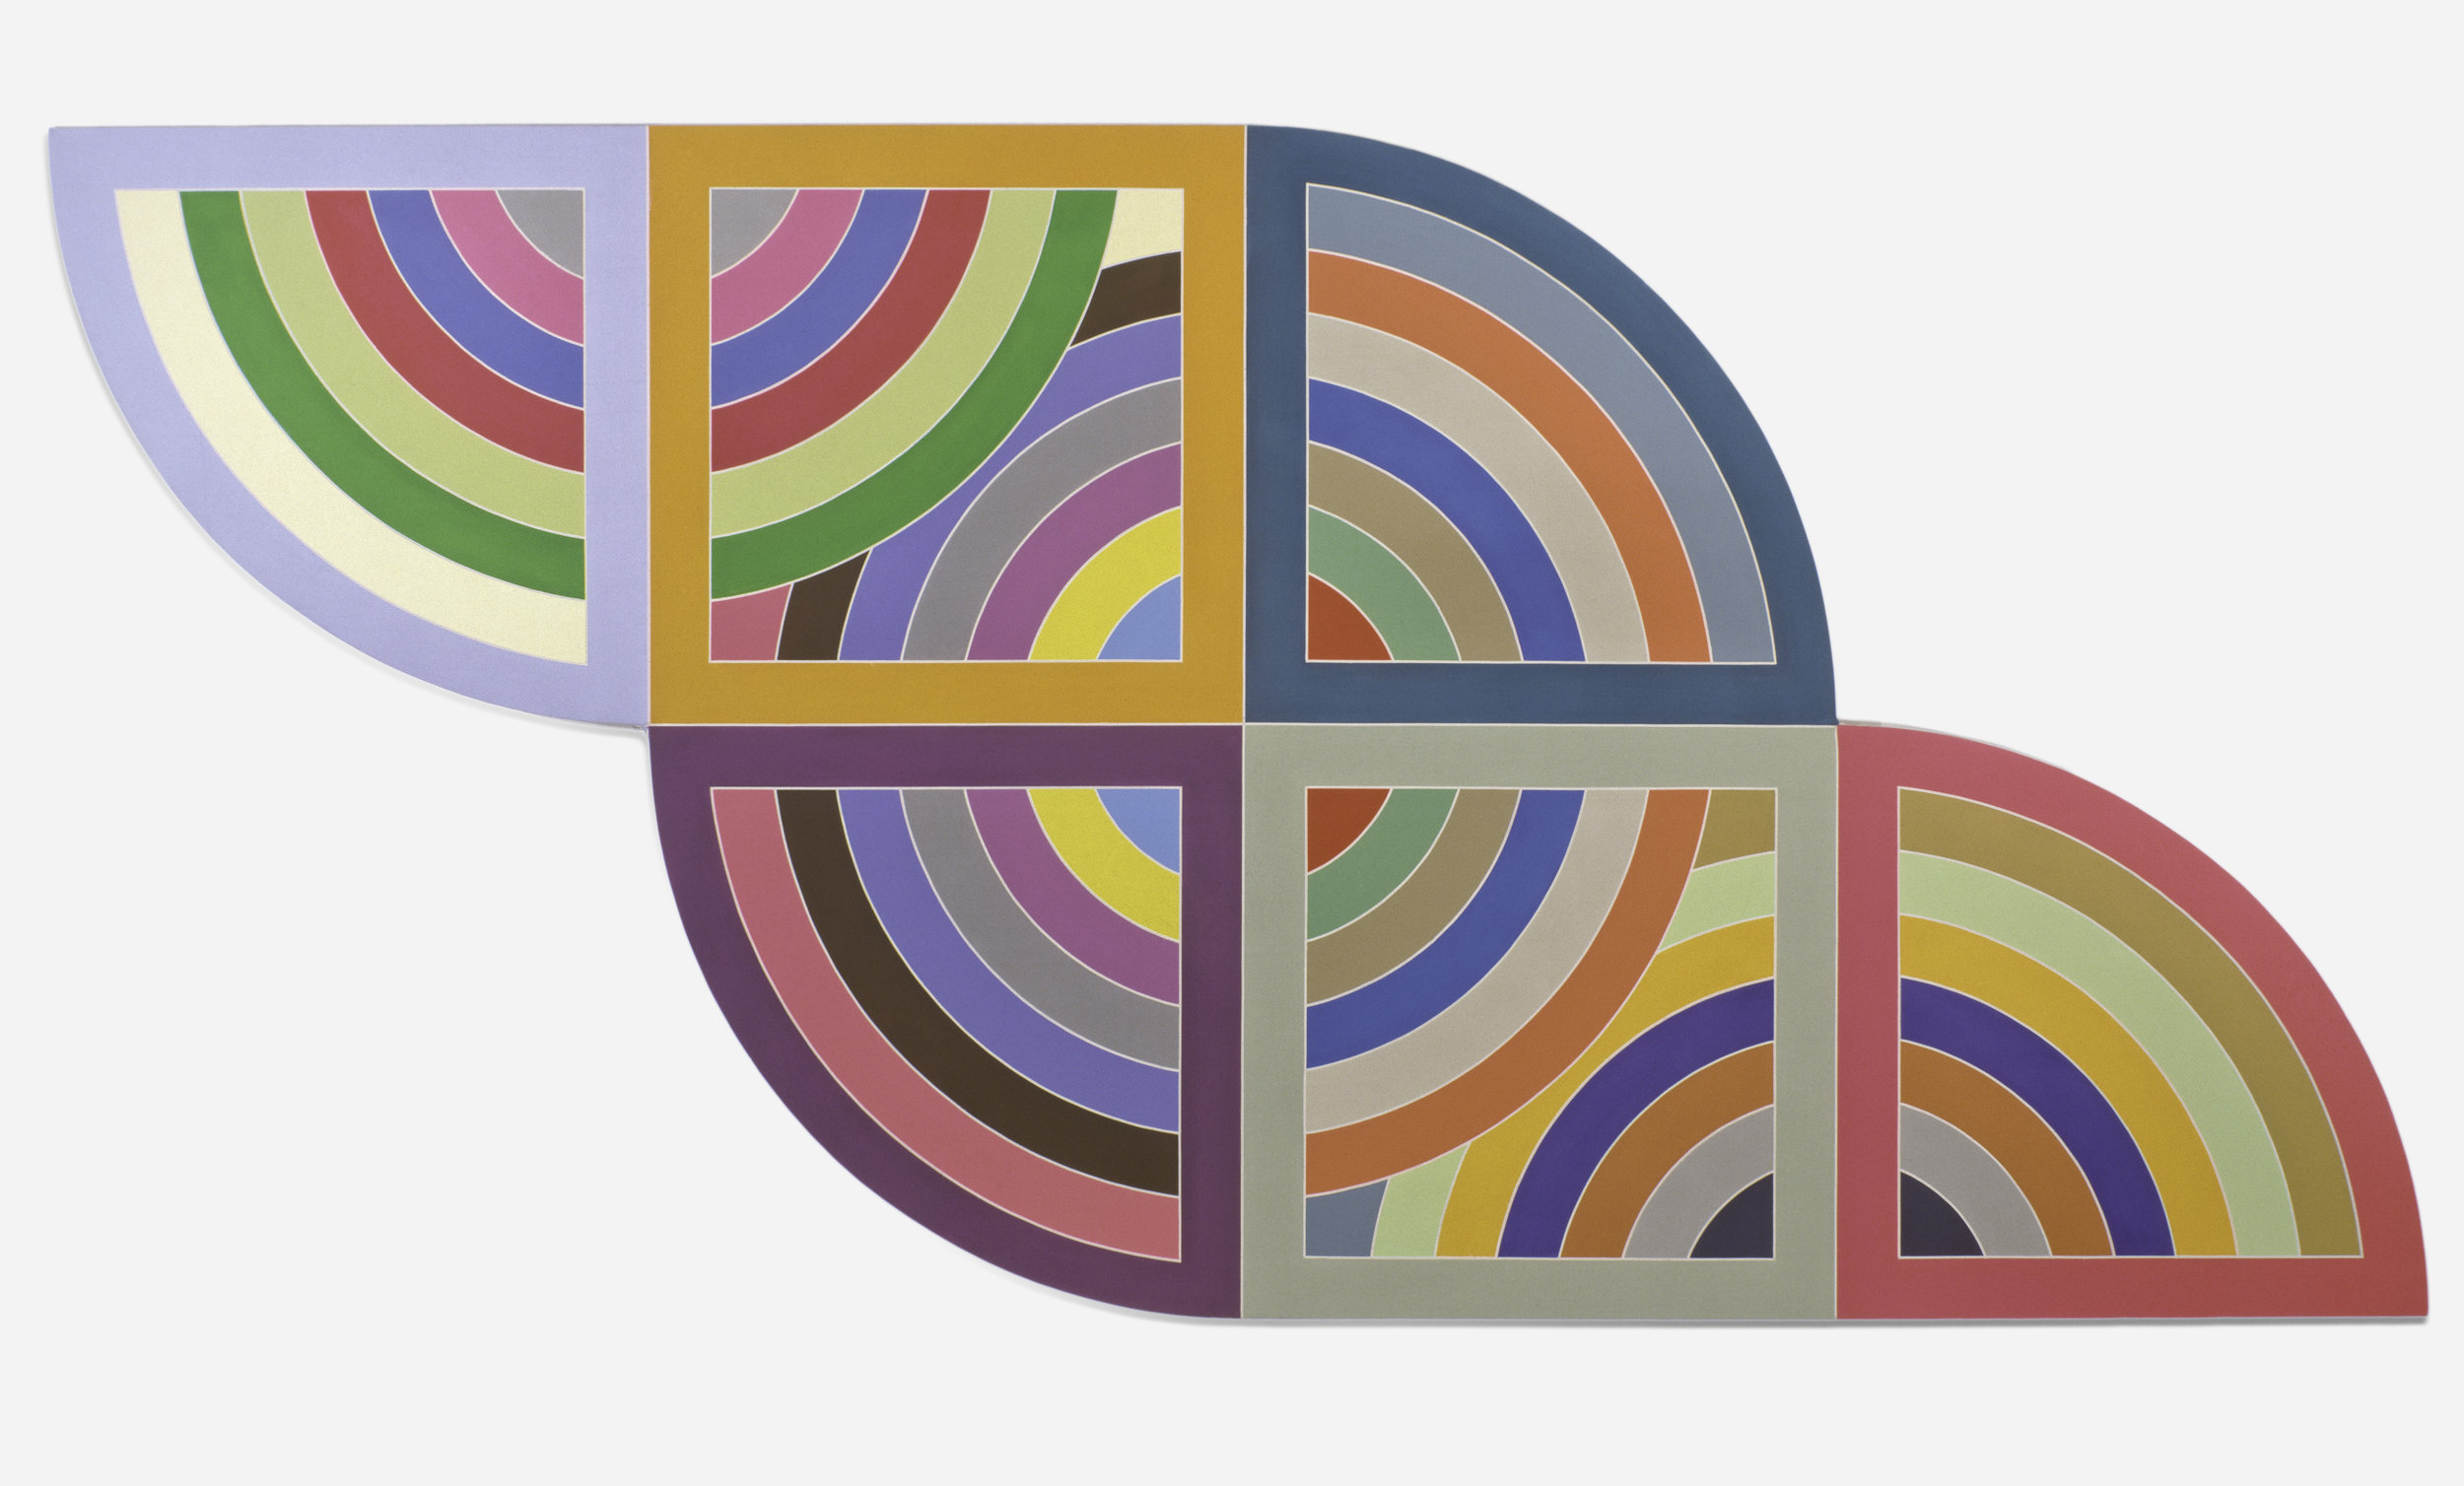 Frank Stella ,  Harran II , 1967 © 2018 Frank Stella / Artists Rights Society (ARS), New York